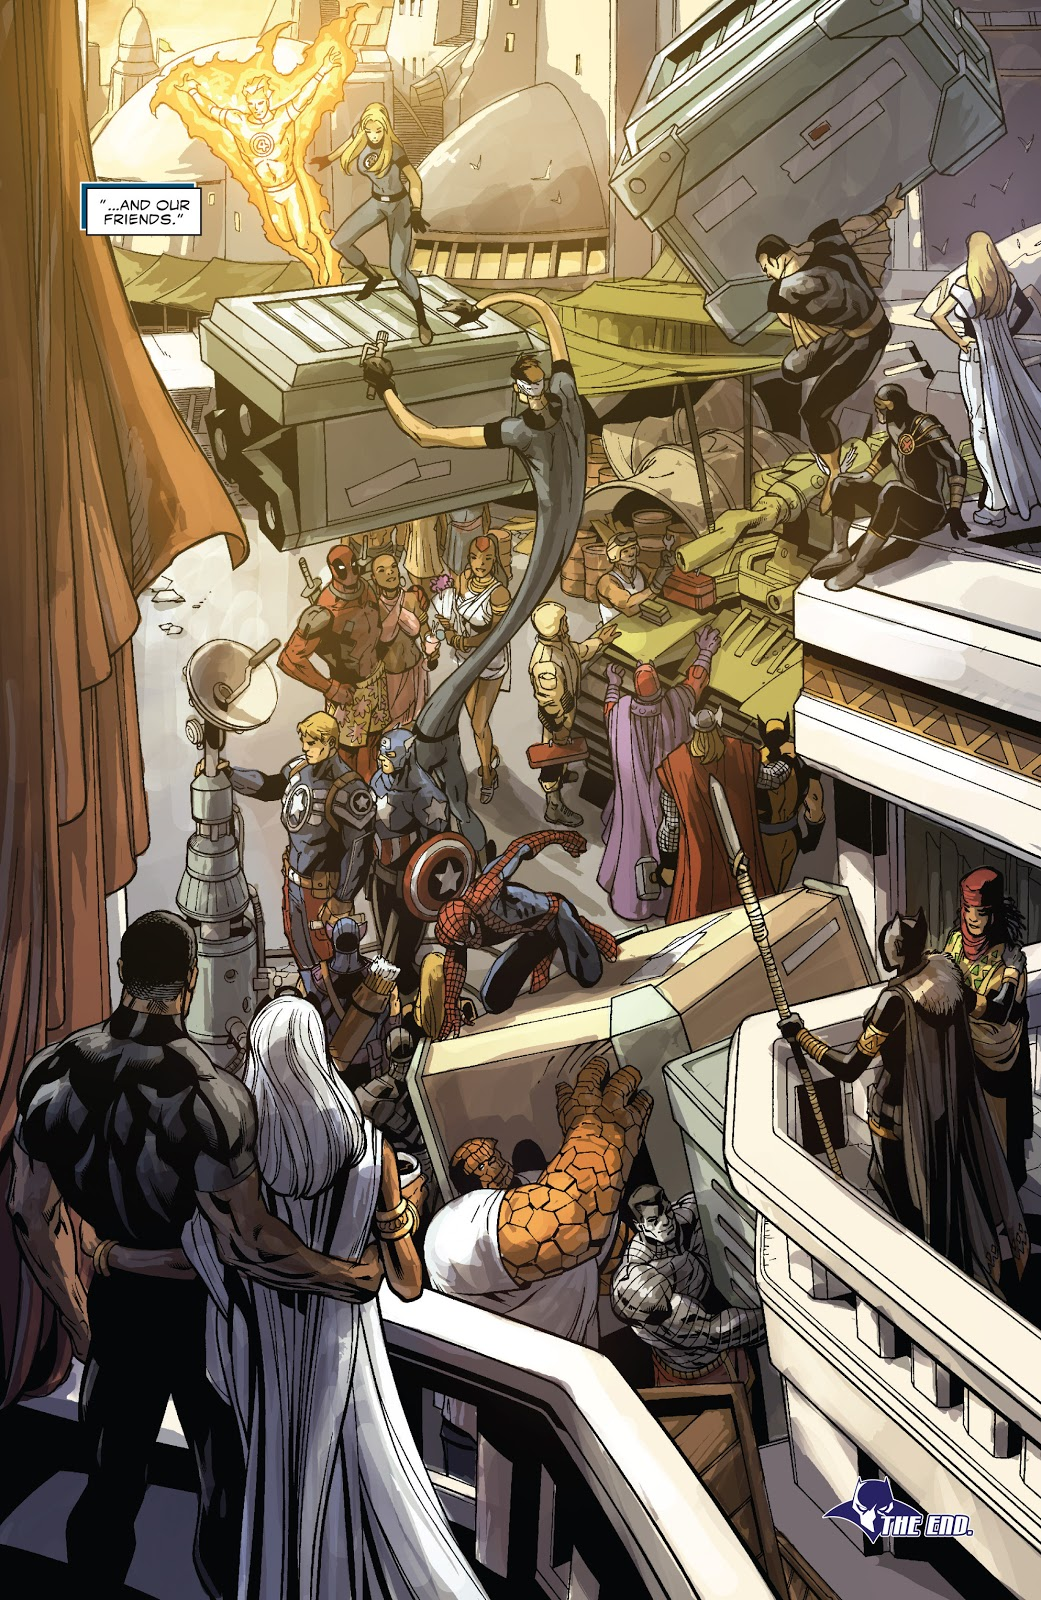 In 'Doomwar' (2010) #6, Black Panther and Storm watch as the superhero community helps to rebuild Wakanda.